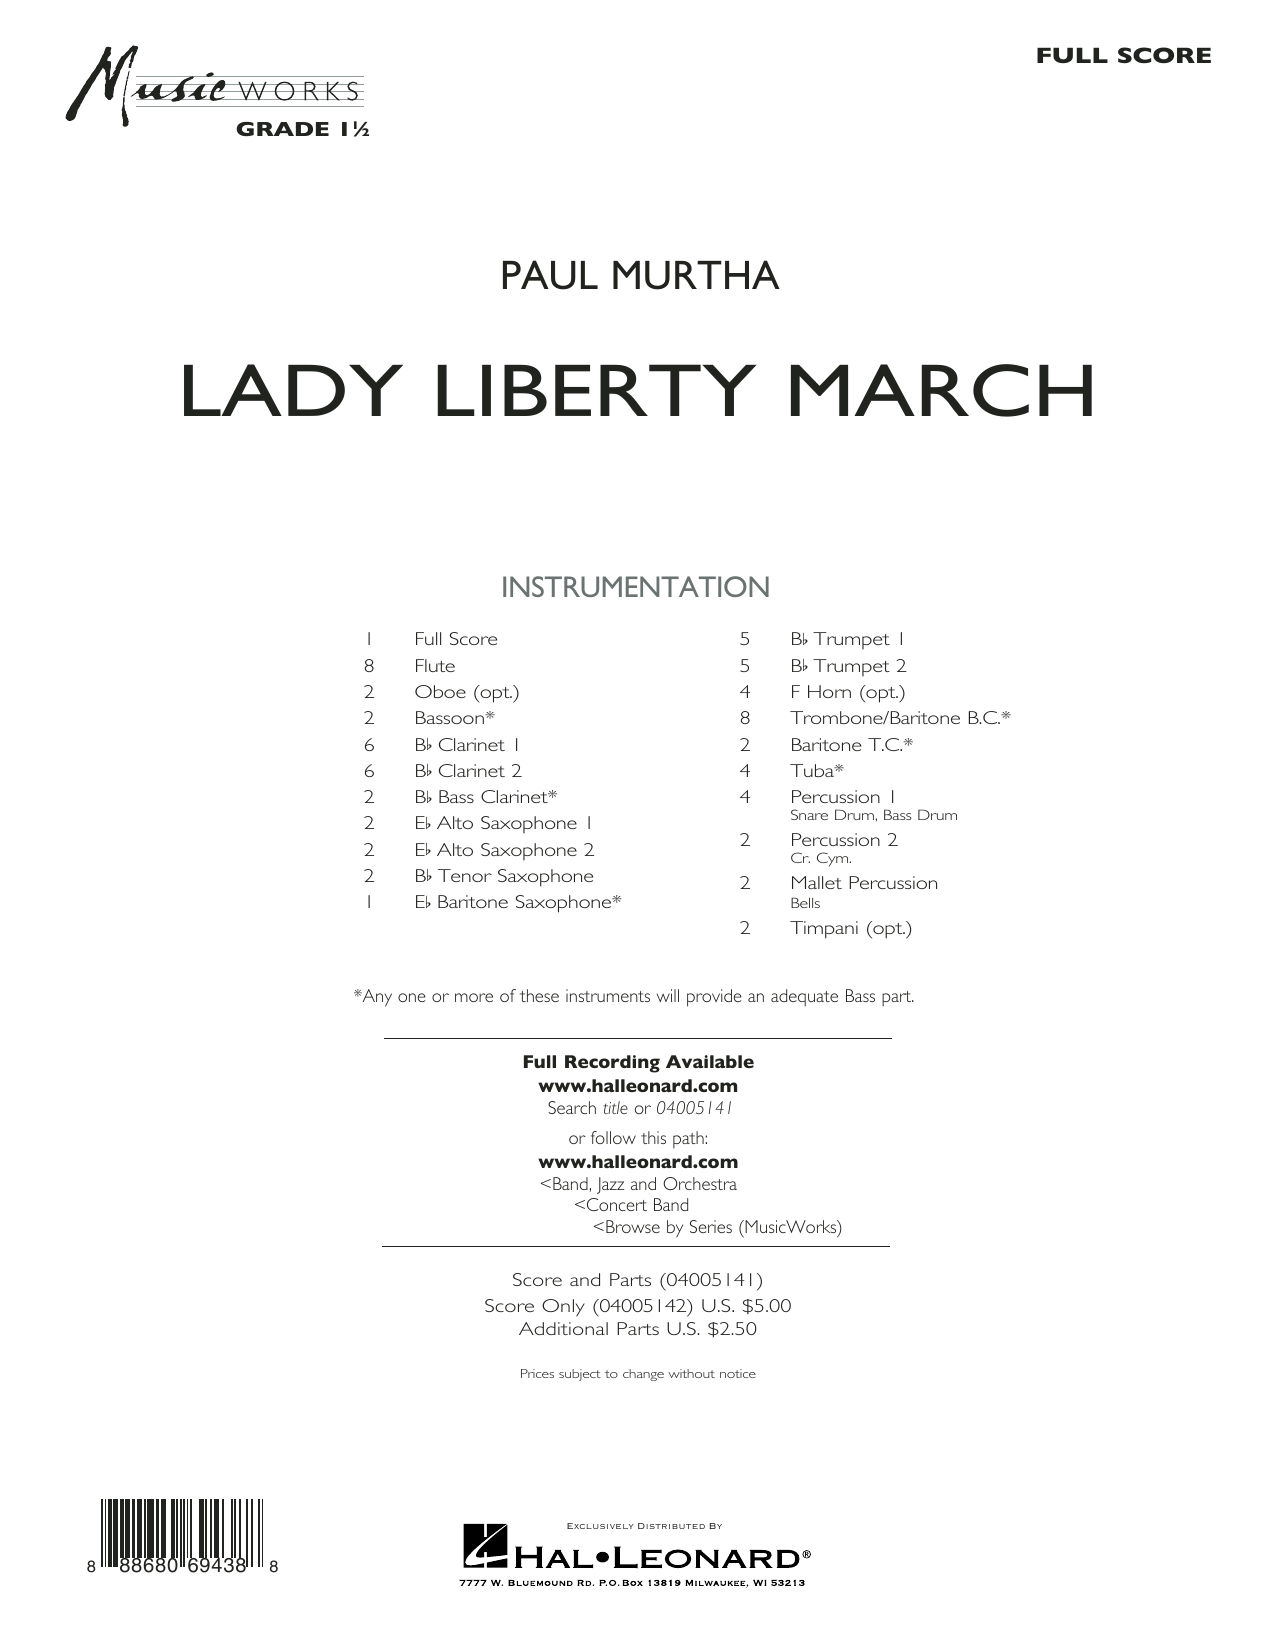 Paul Murtha Lady Liberty March - Conductor Score (Full Score) sheet music notes and chords. Download Printable PDF.